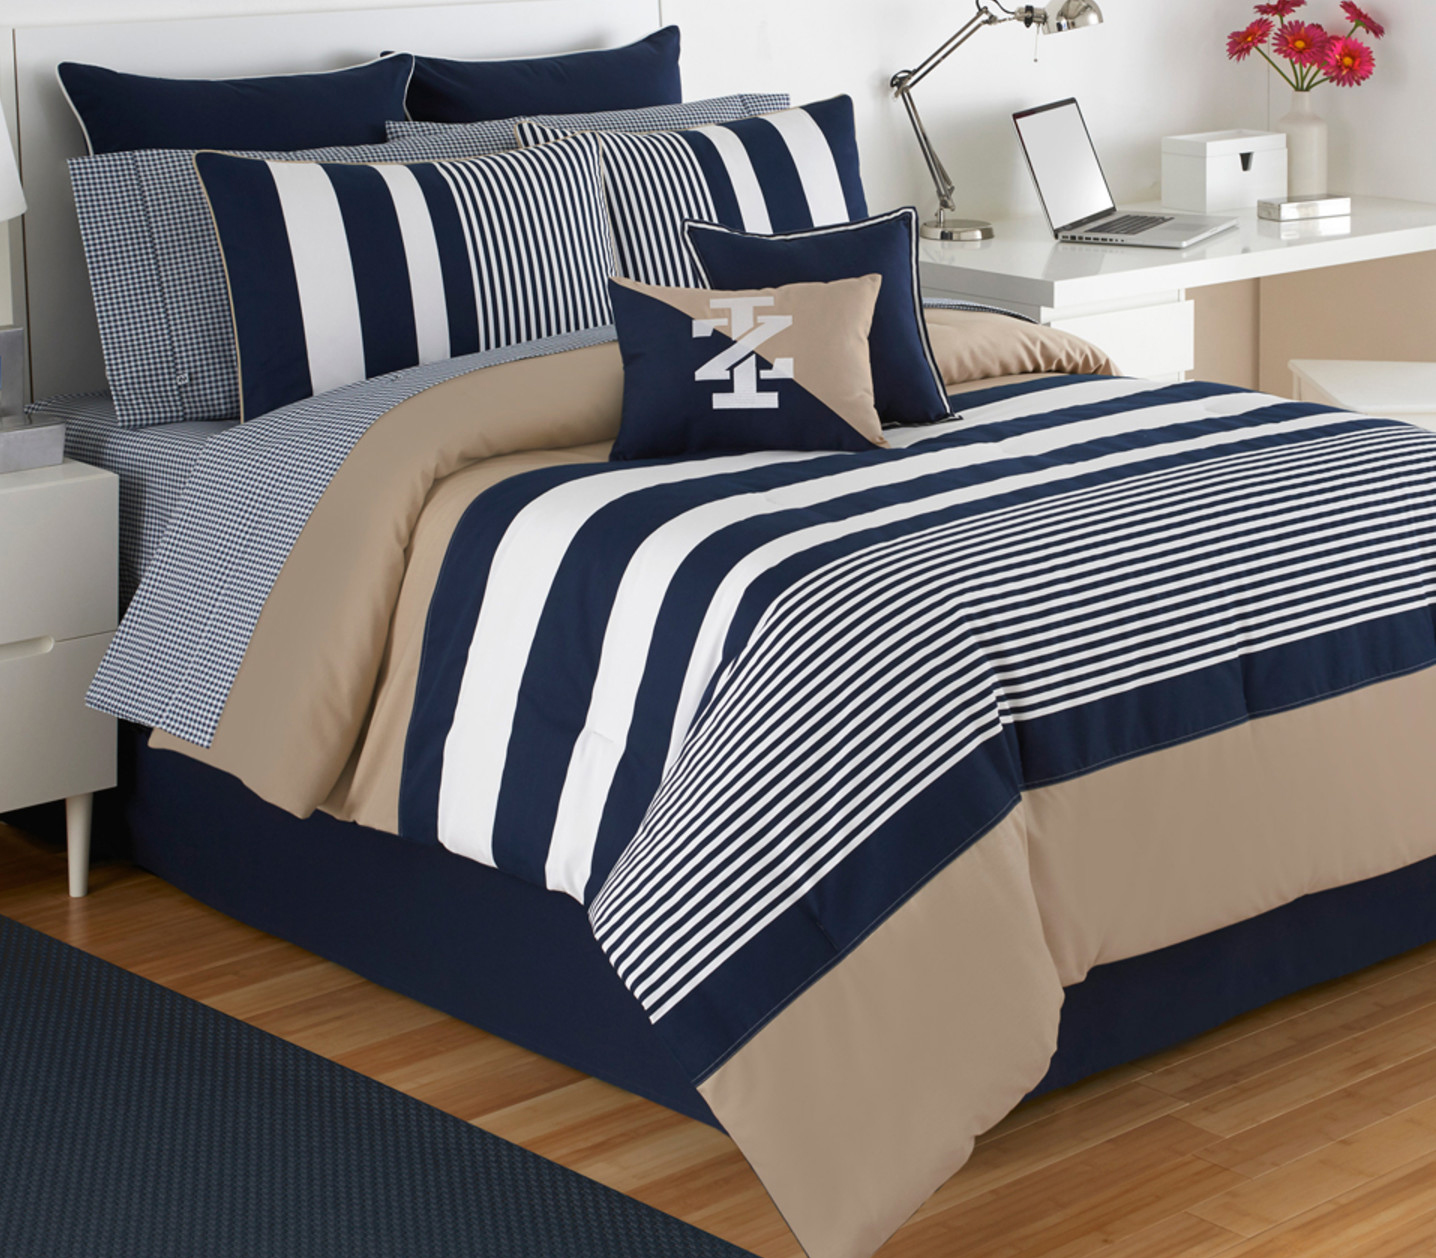 Classic Stripe By Izod Bedding Beddingsuperstore Com